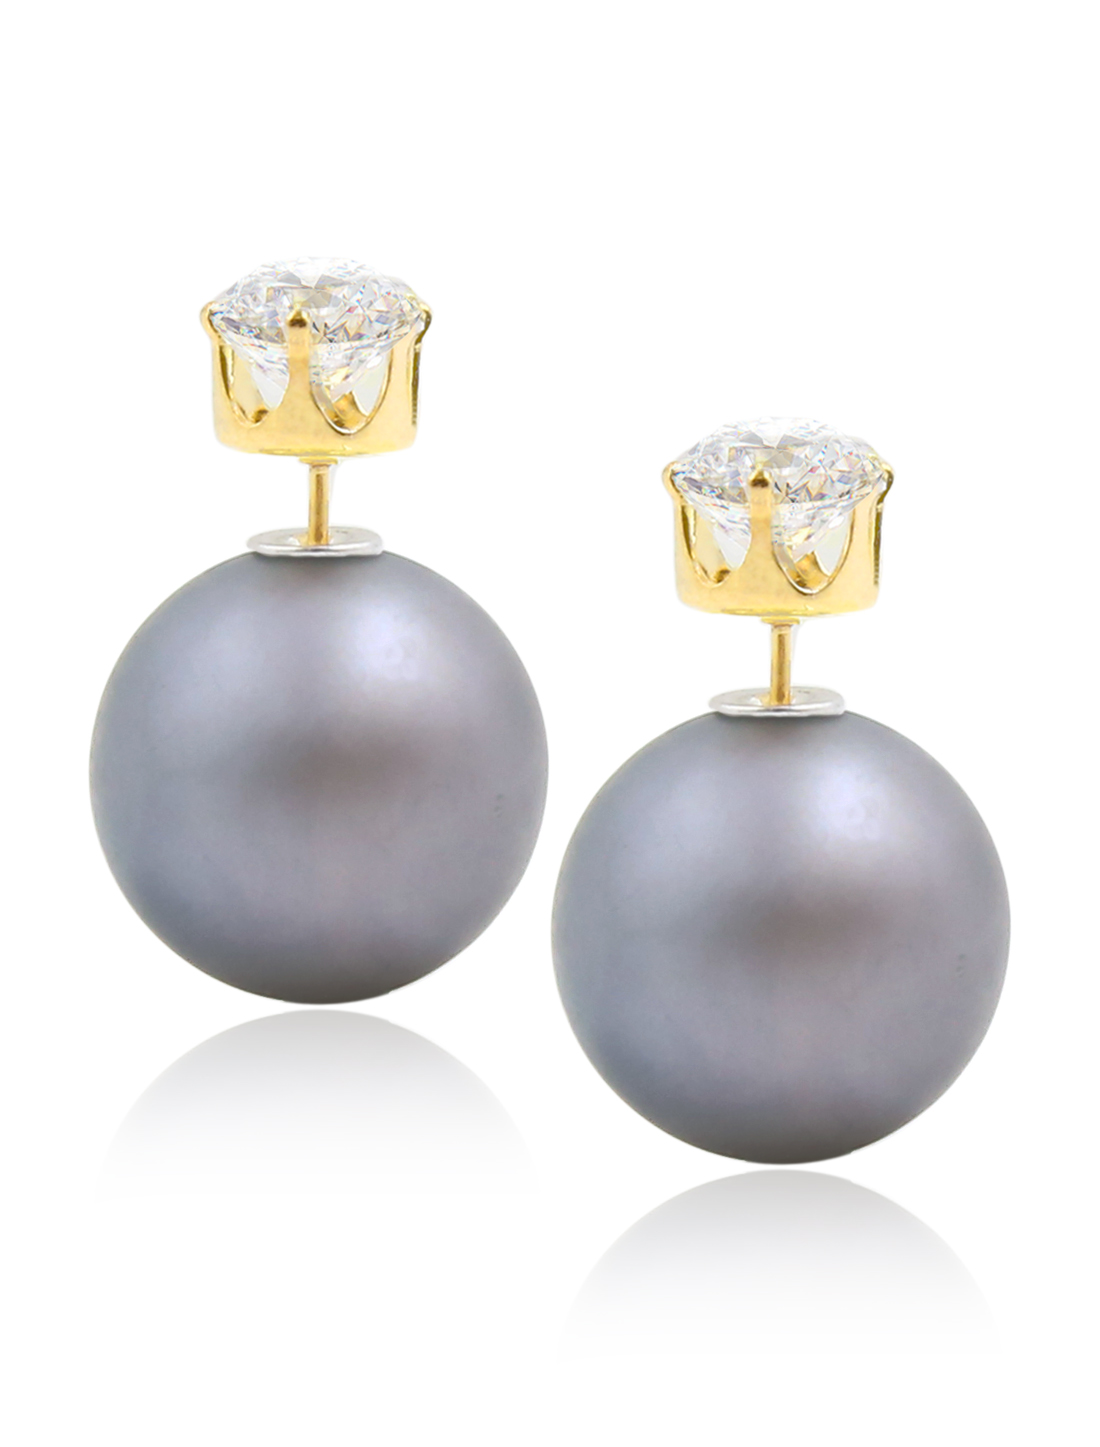 Fashion Women Elegant Double Sides Zircon Ball Earrings Ear Stud 1 Pair Matte Gray